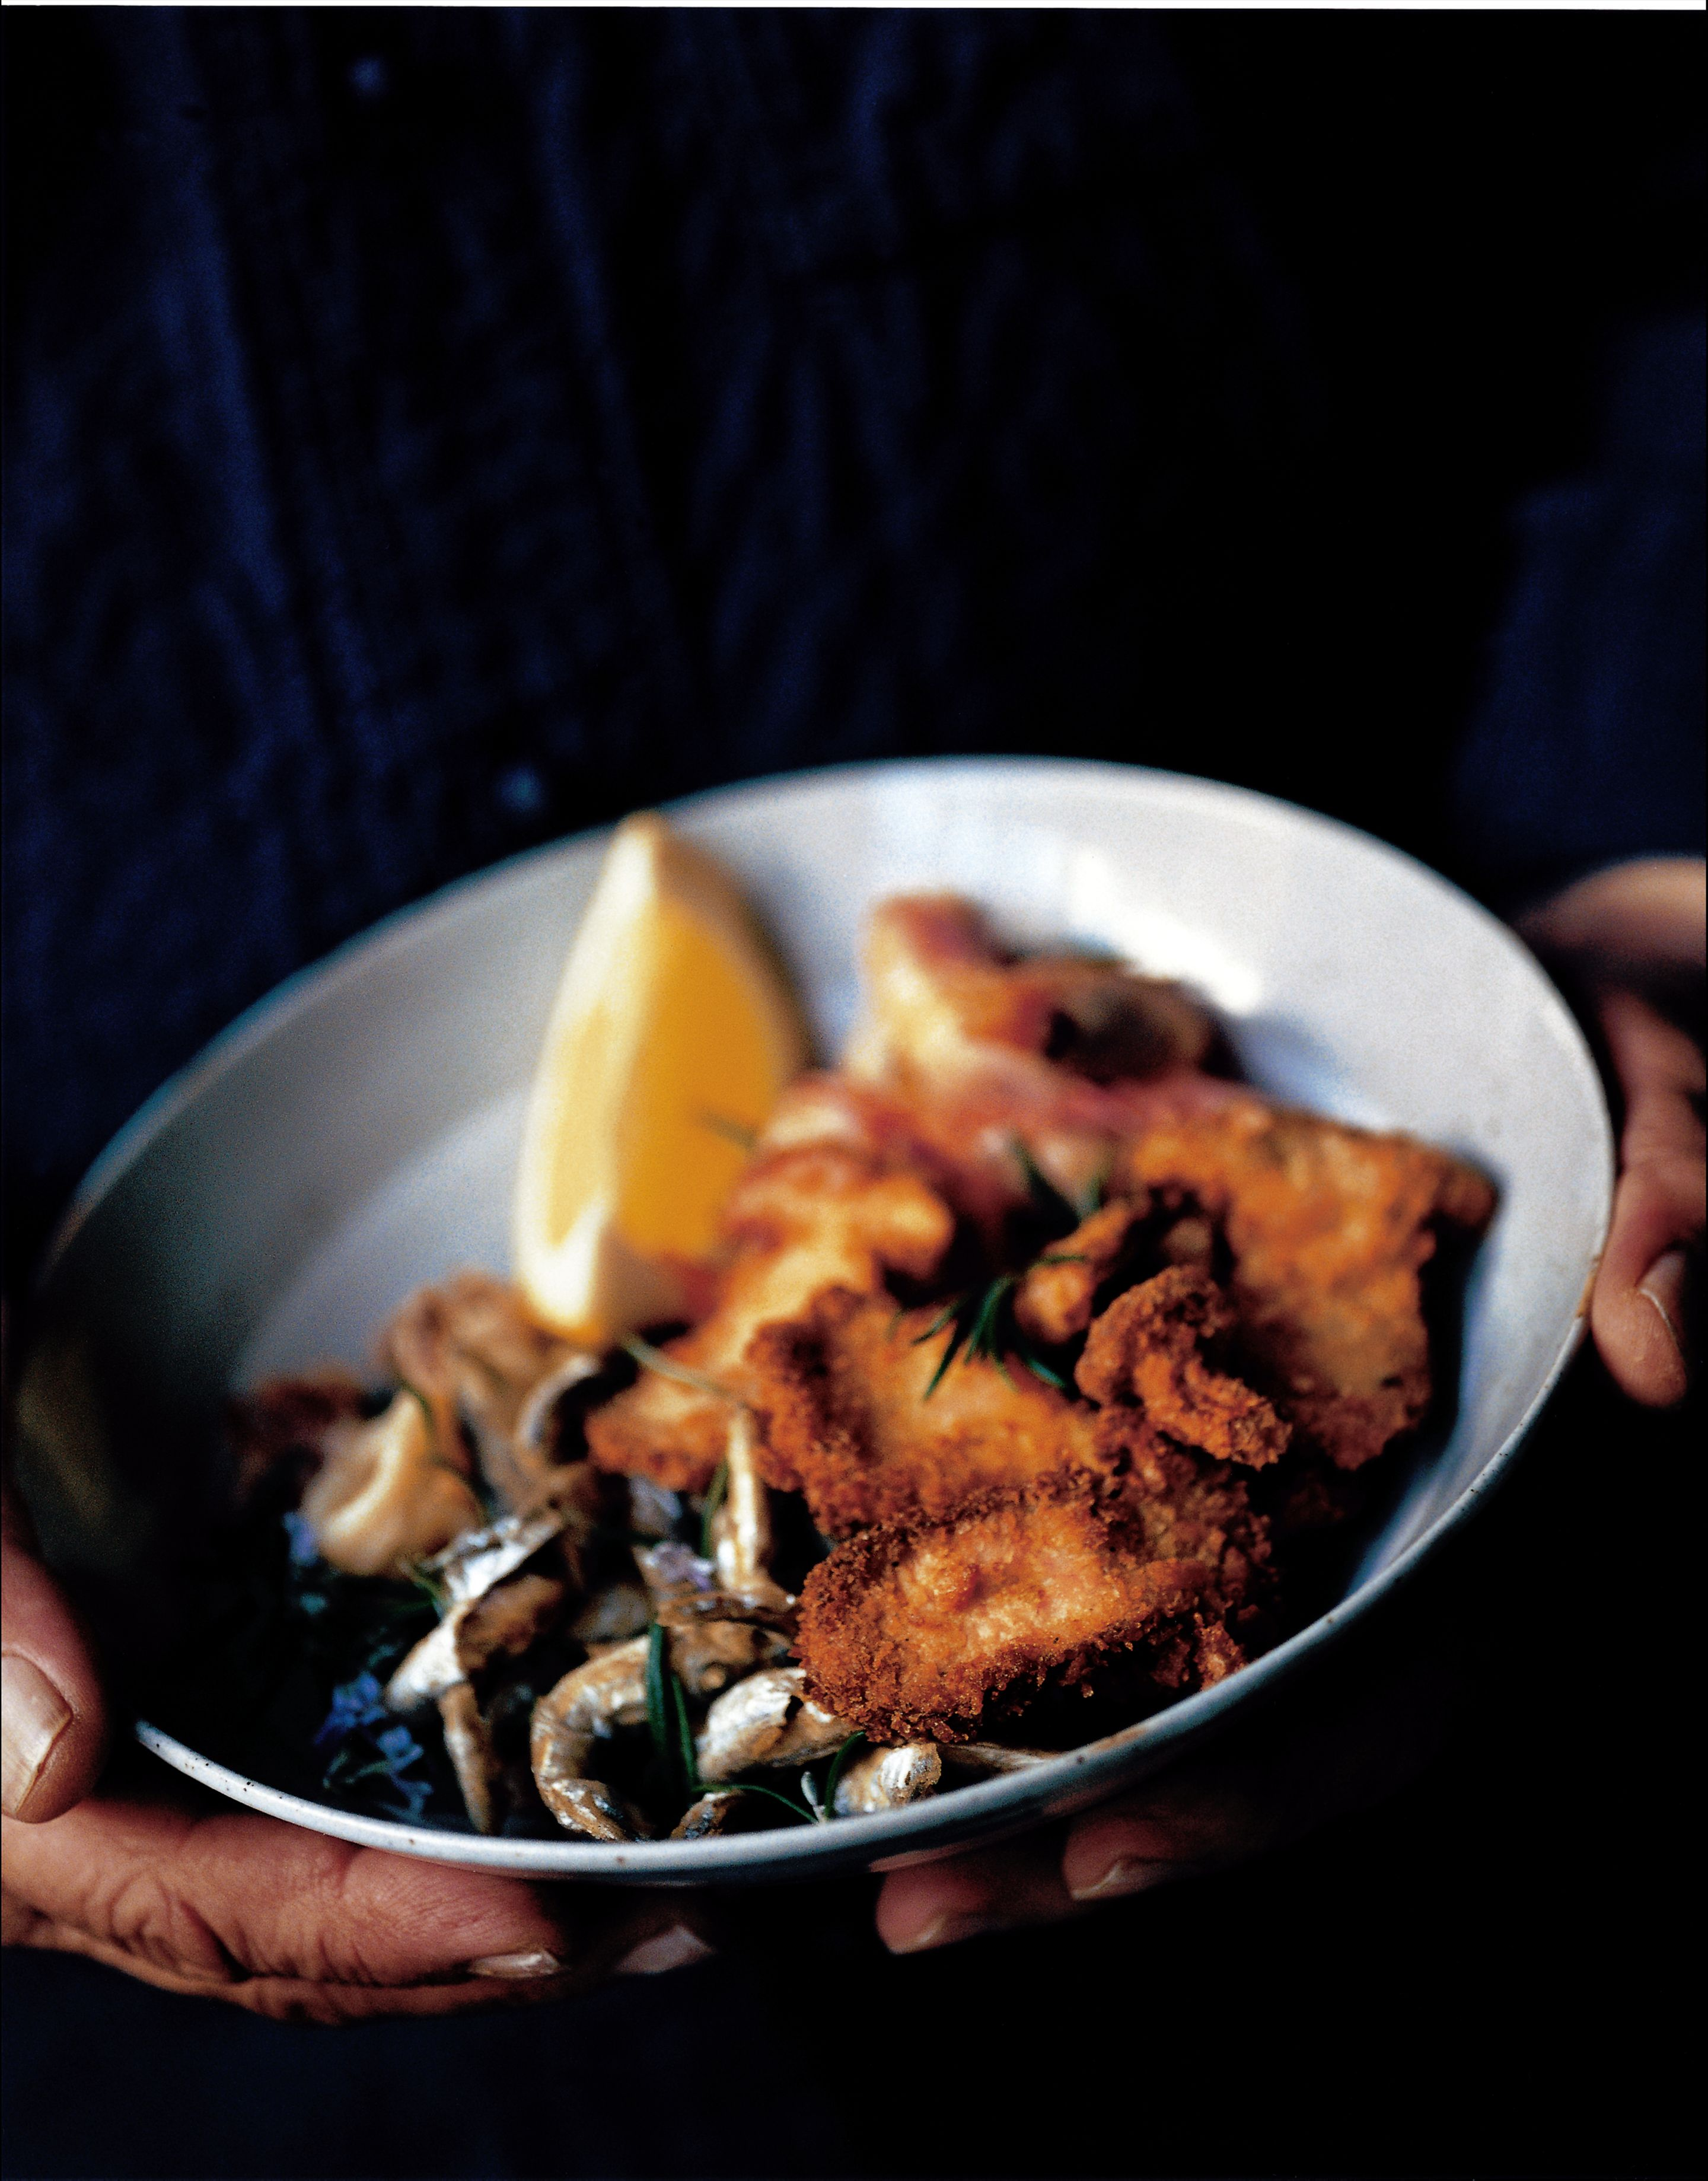 Fried seafood and mushrooms